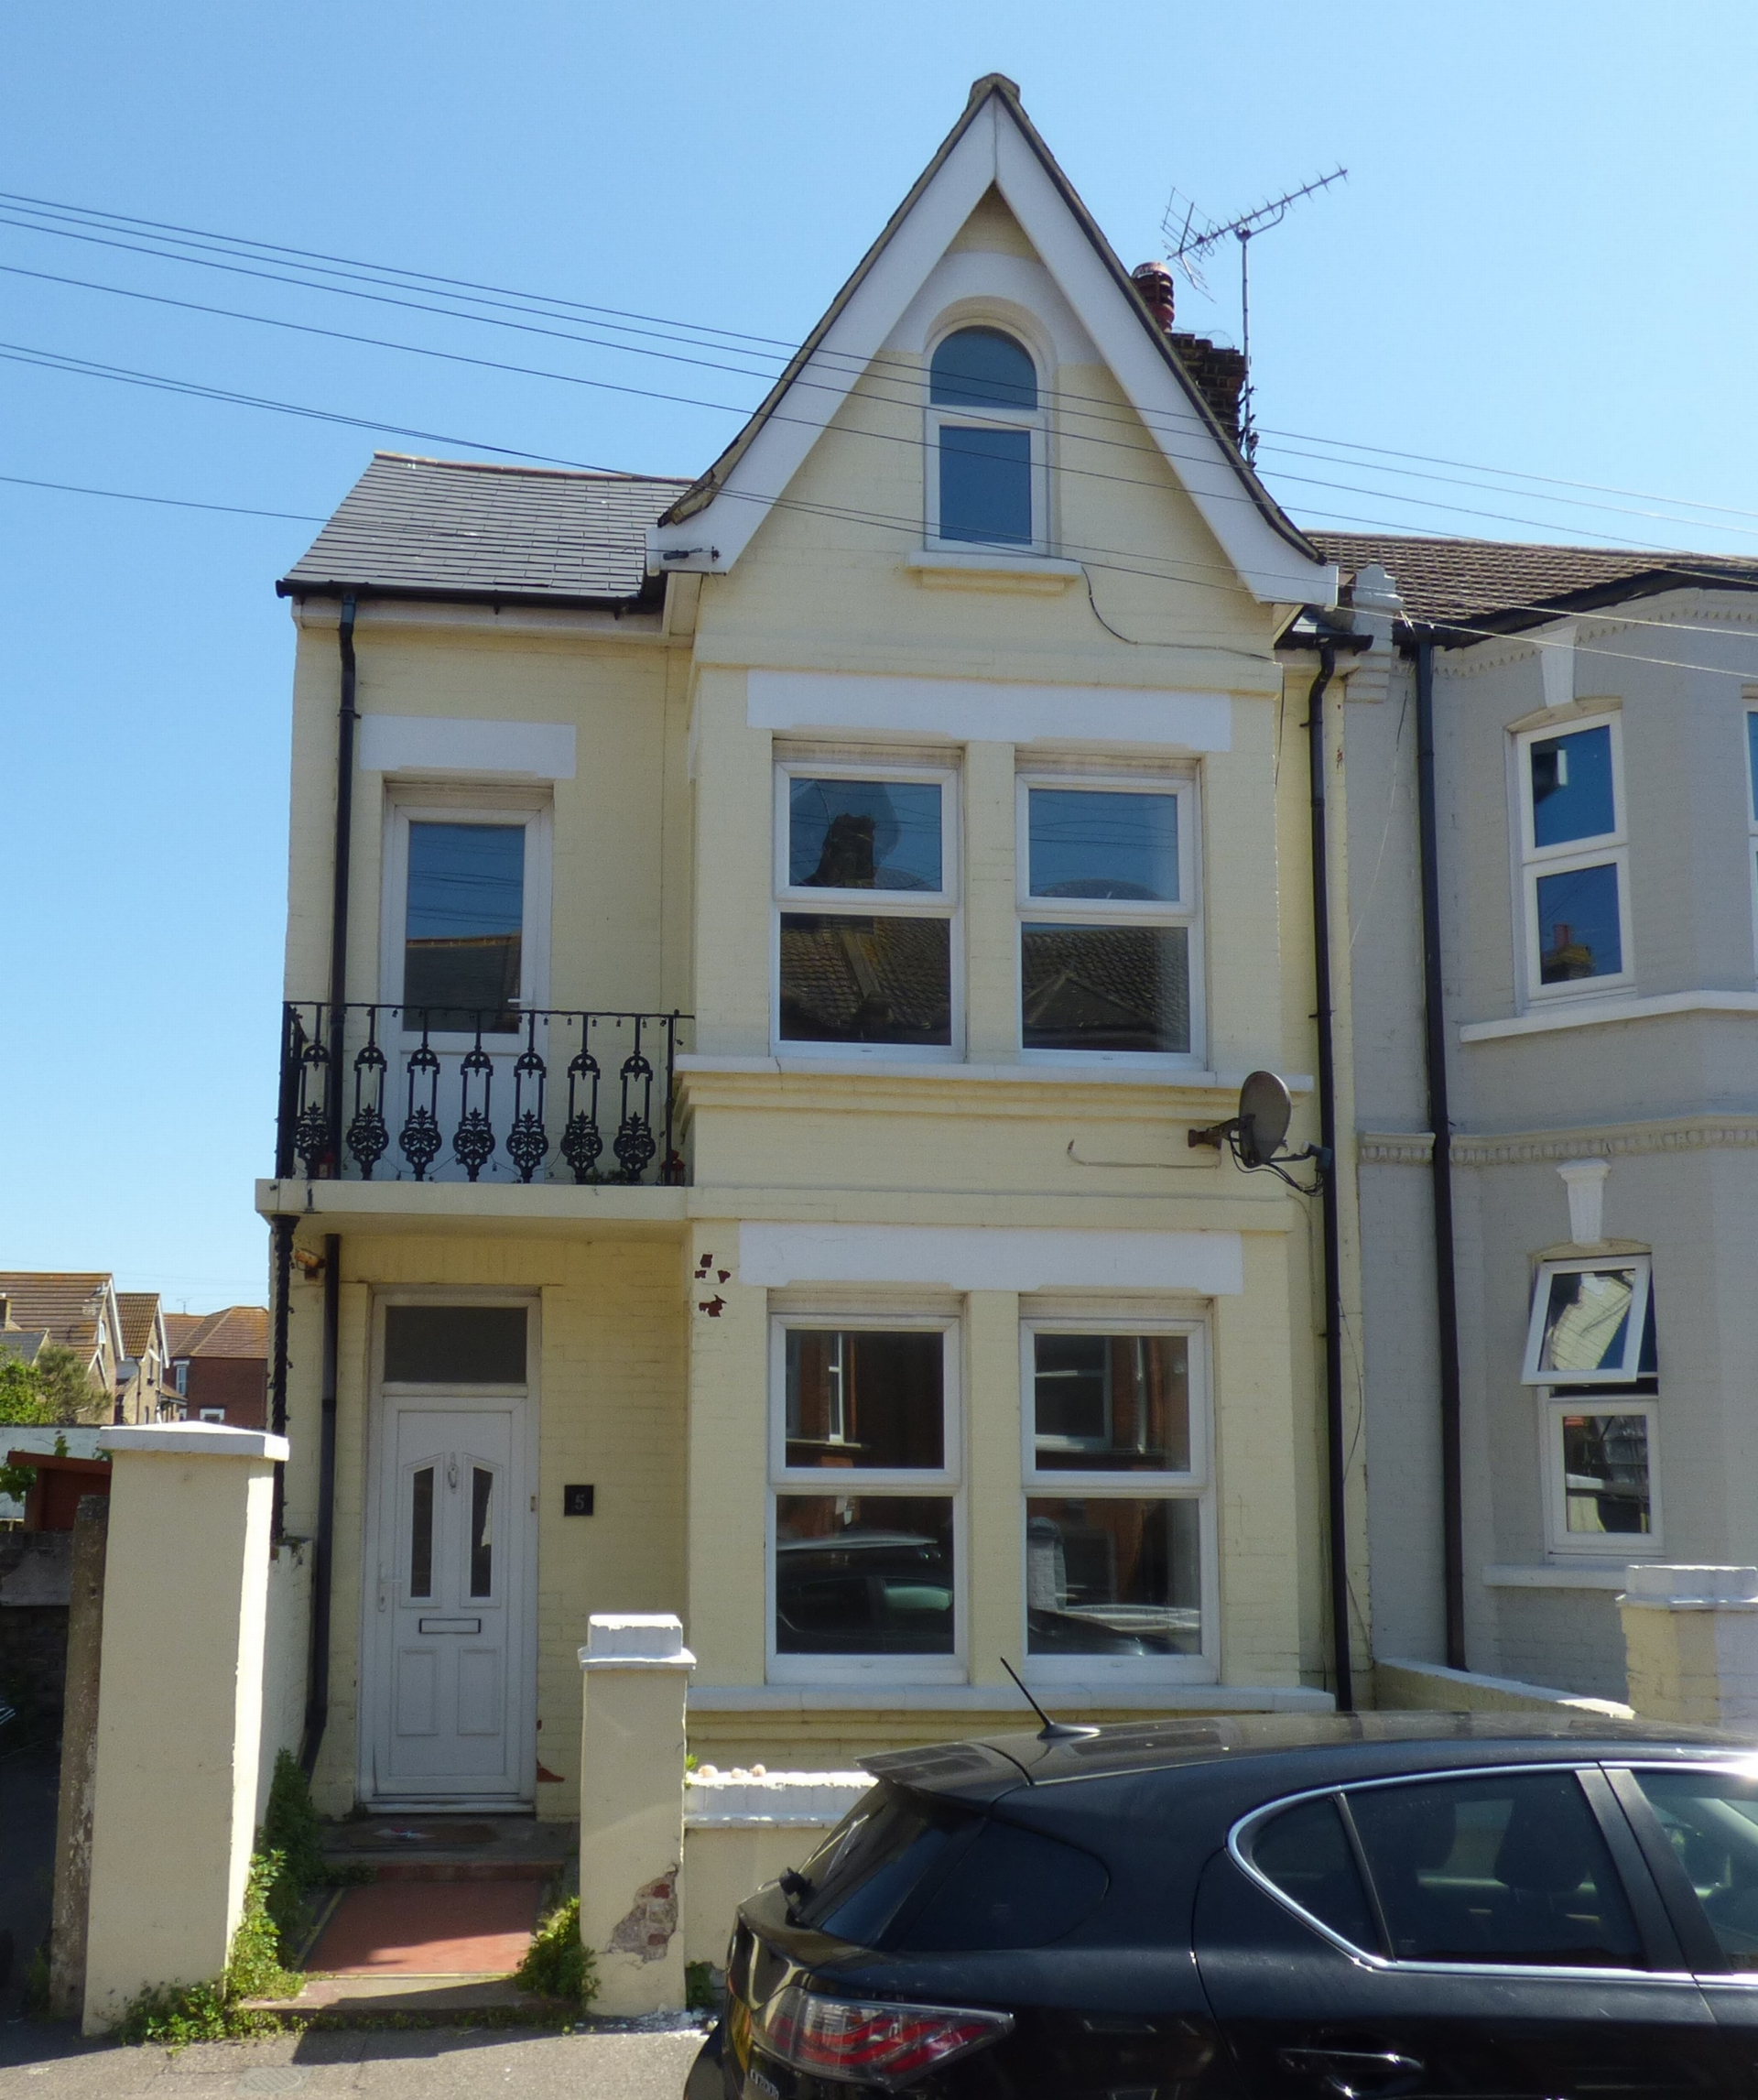 4 bed end of terrace house for sale in Crescent Road, Margate - Property Image 1